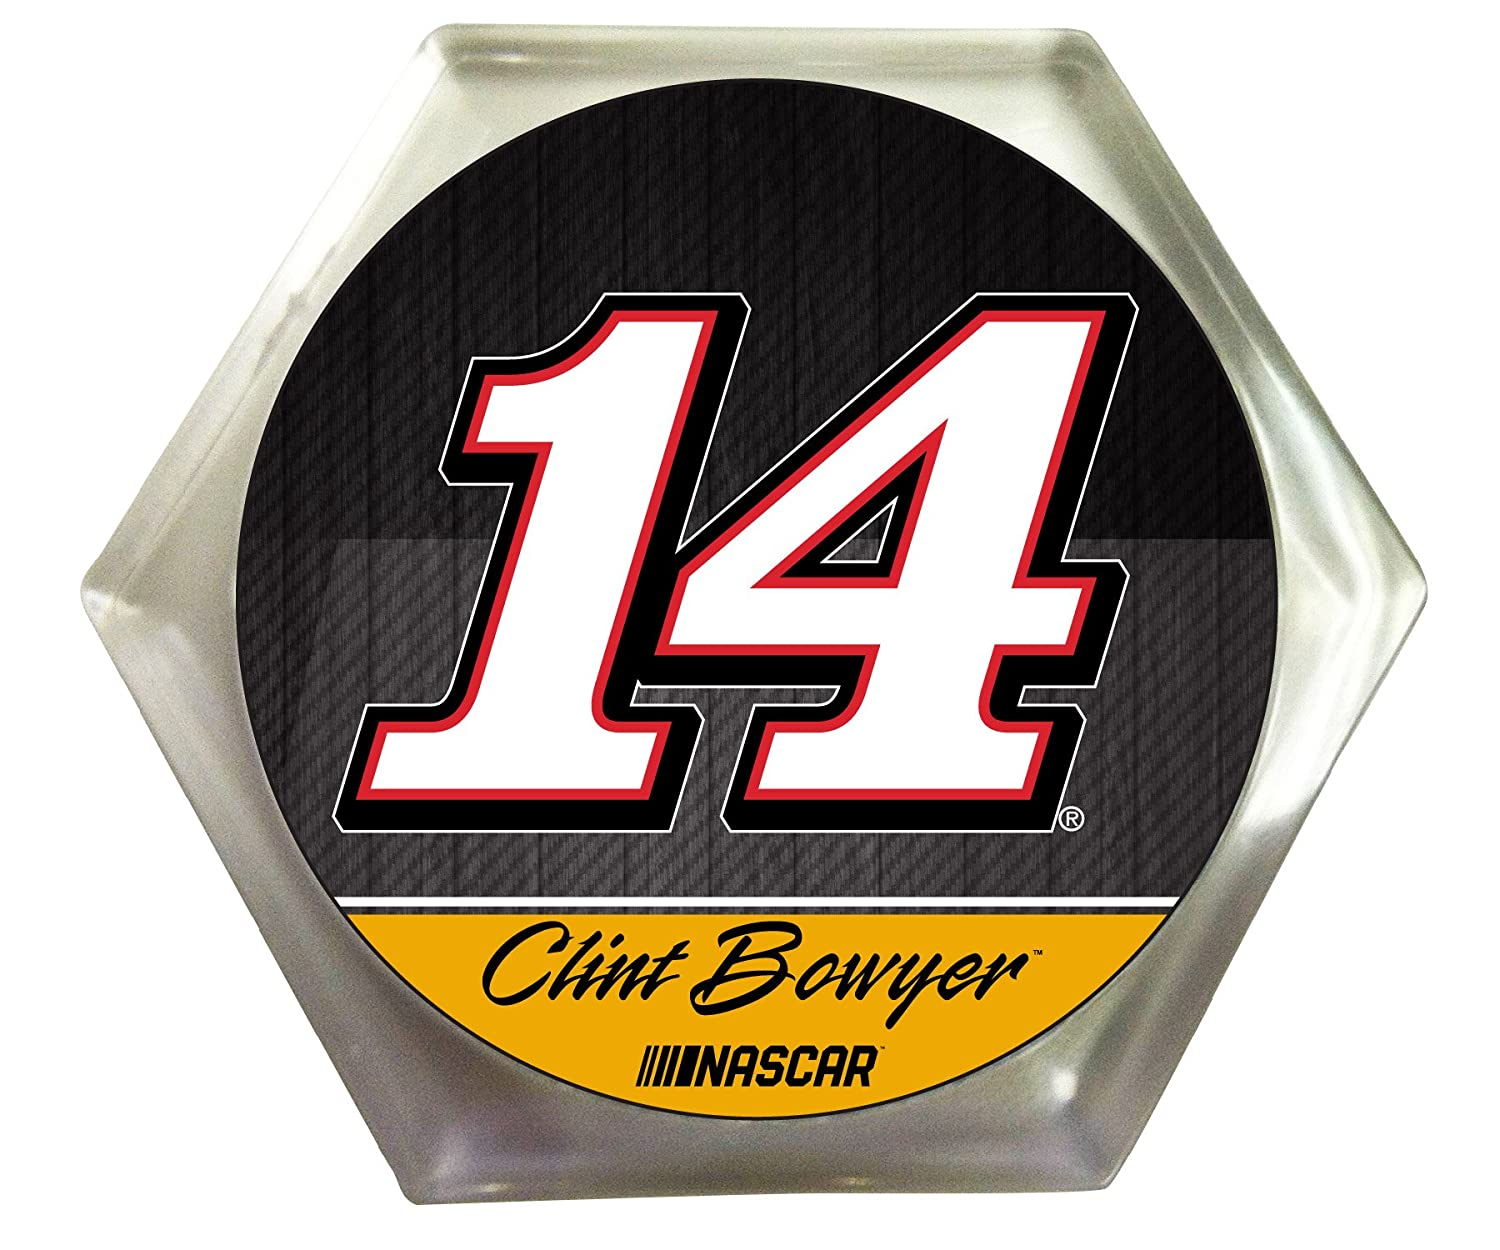 Clint Bowyer # 14 NASCAR 2 - Packアクリルコースター   B079RJX1QP